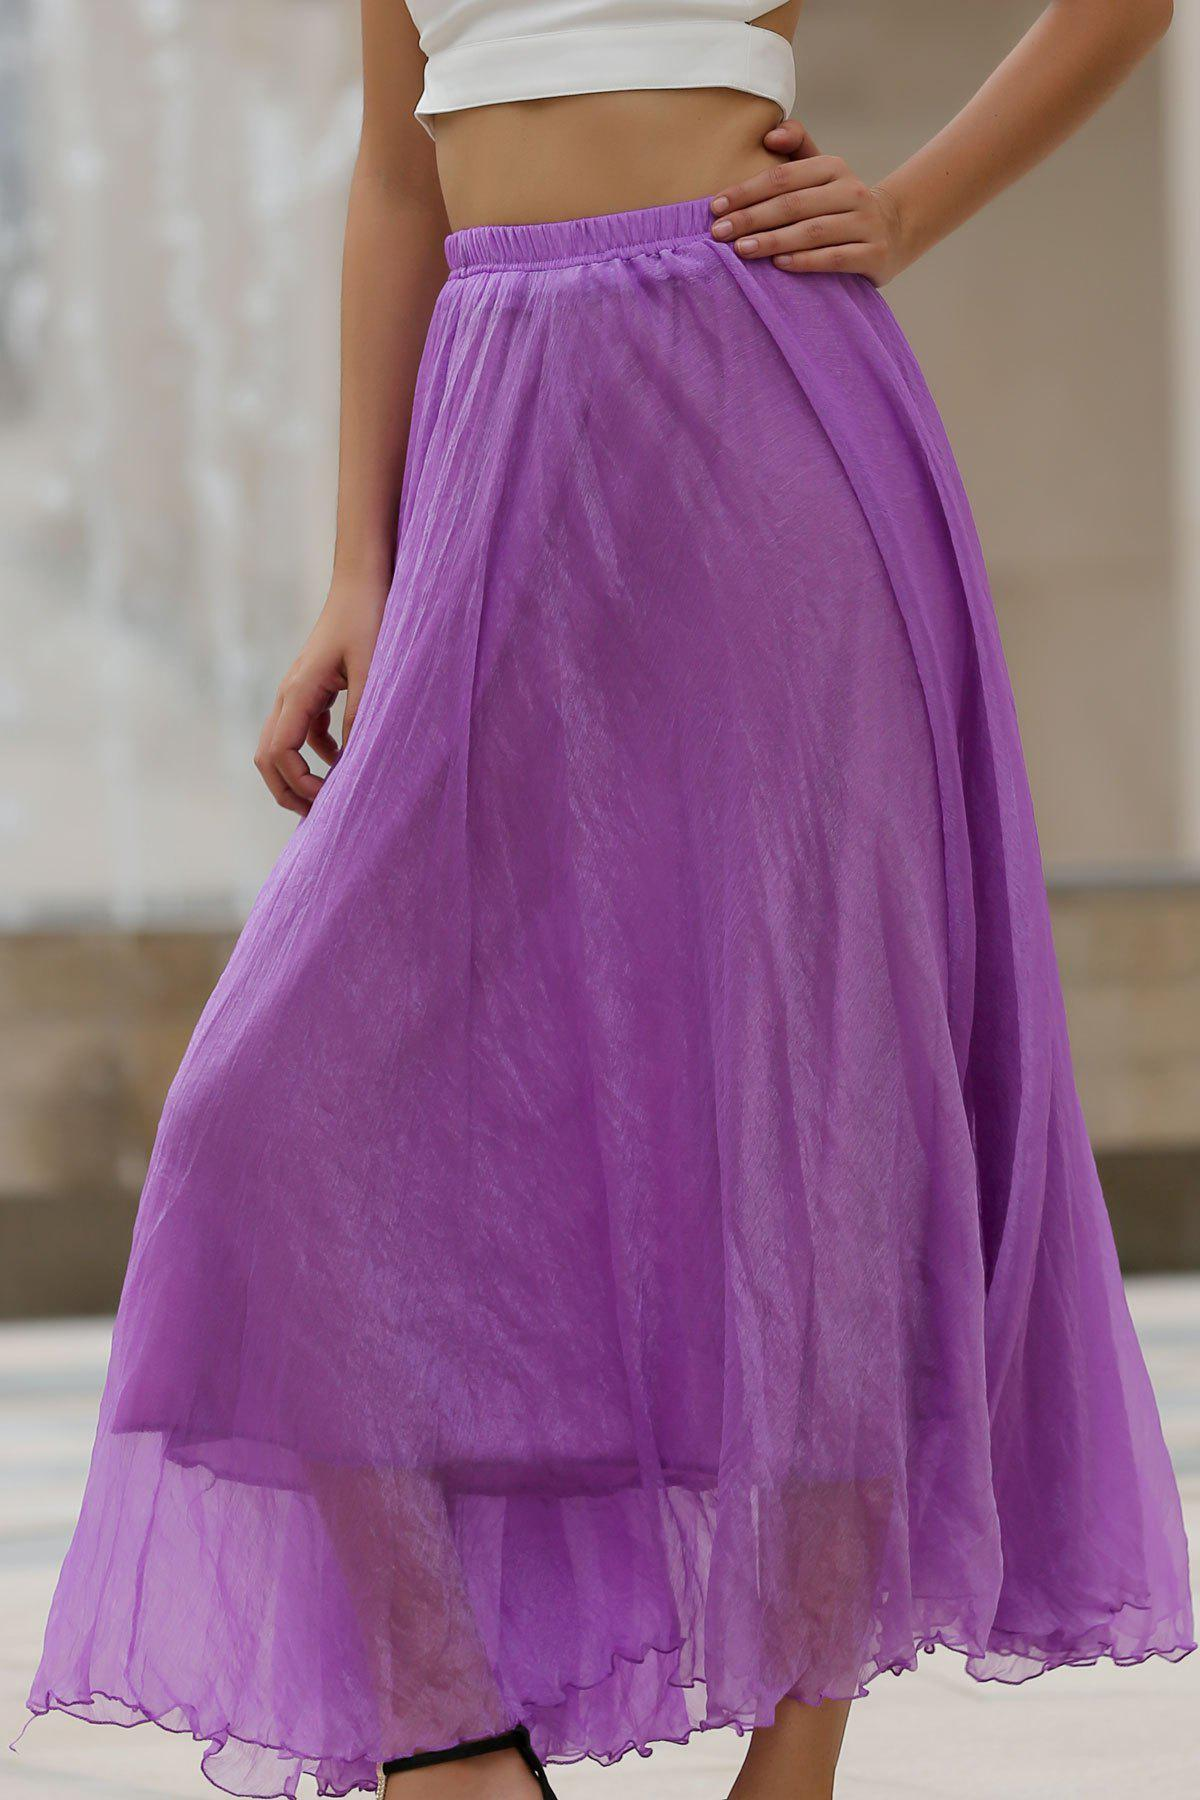 Stylish Elastic Waist Solid Color Women's Chiffon Skirt - PURPLE S